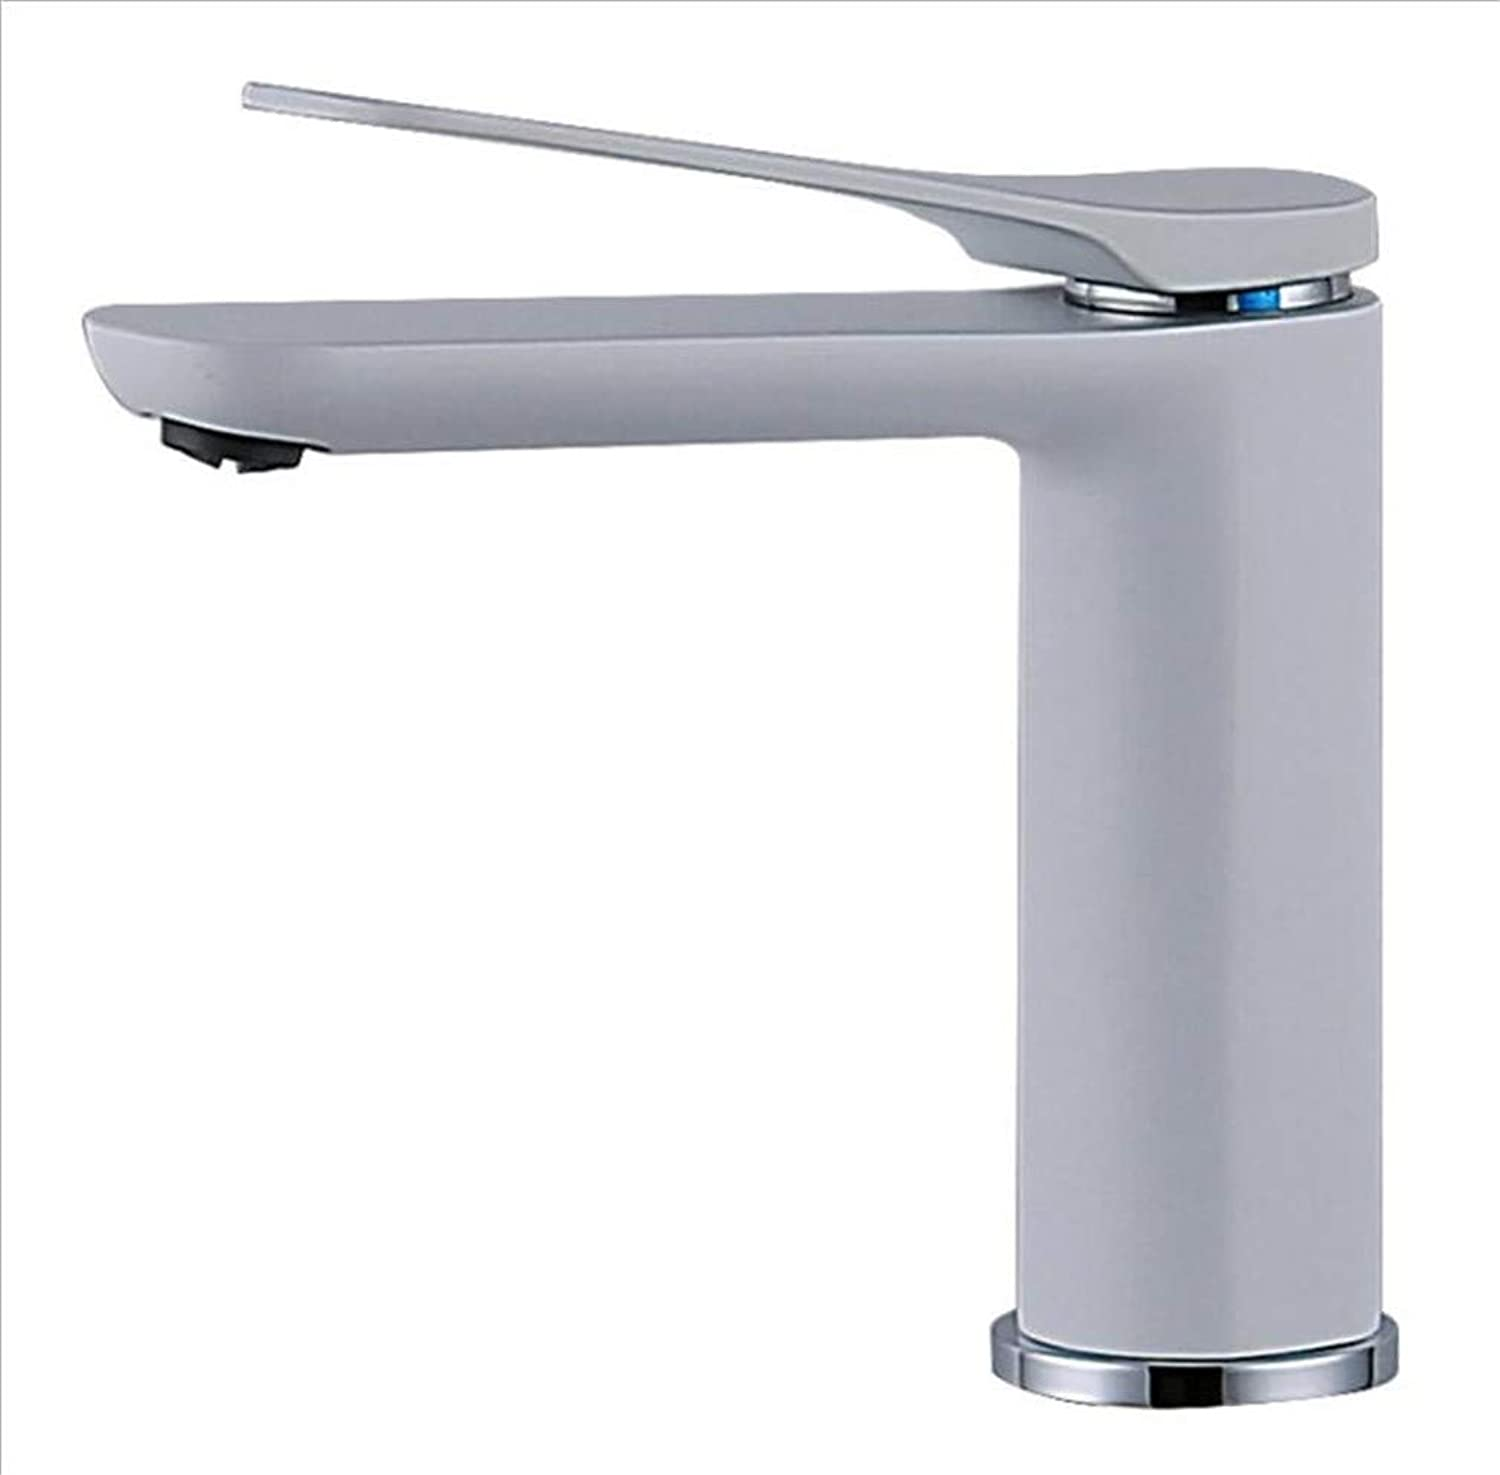 Bathroom Sink Basin Lever Mixer Tap White Baking Paint Single Hole Precision Copper Washbasin Leading Hotel Bathroom Hot and Cold